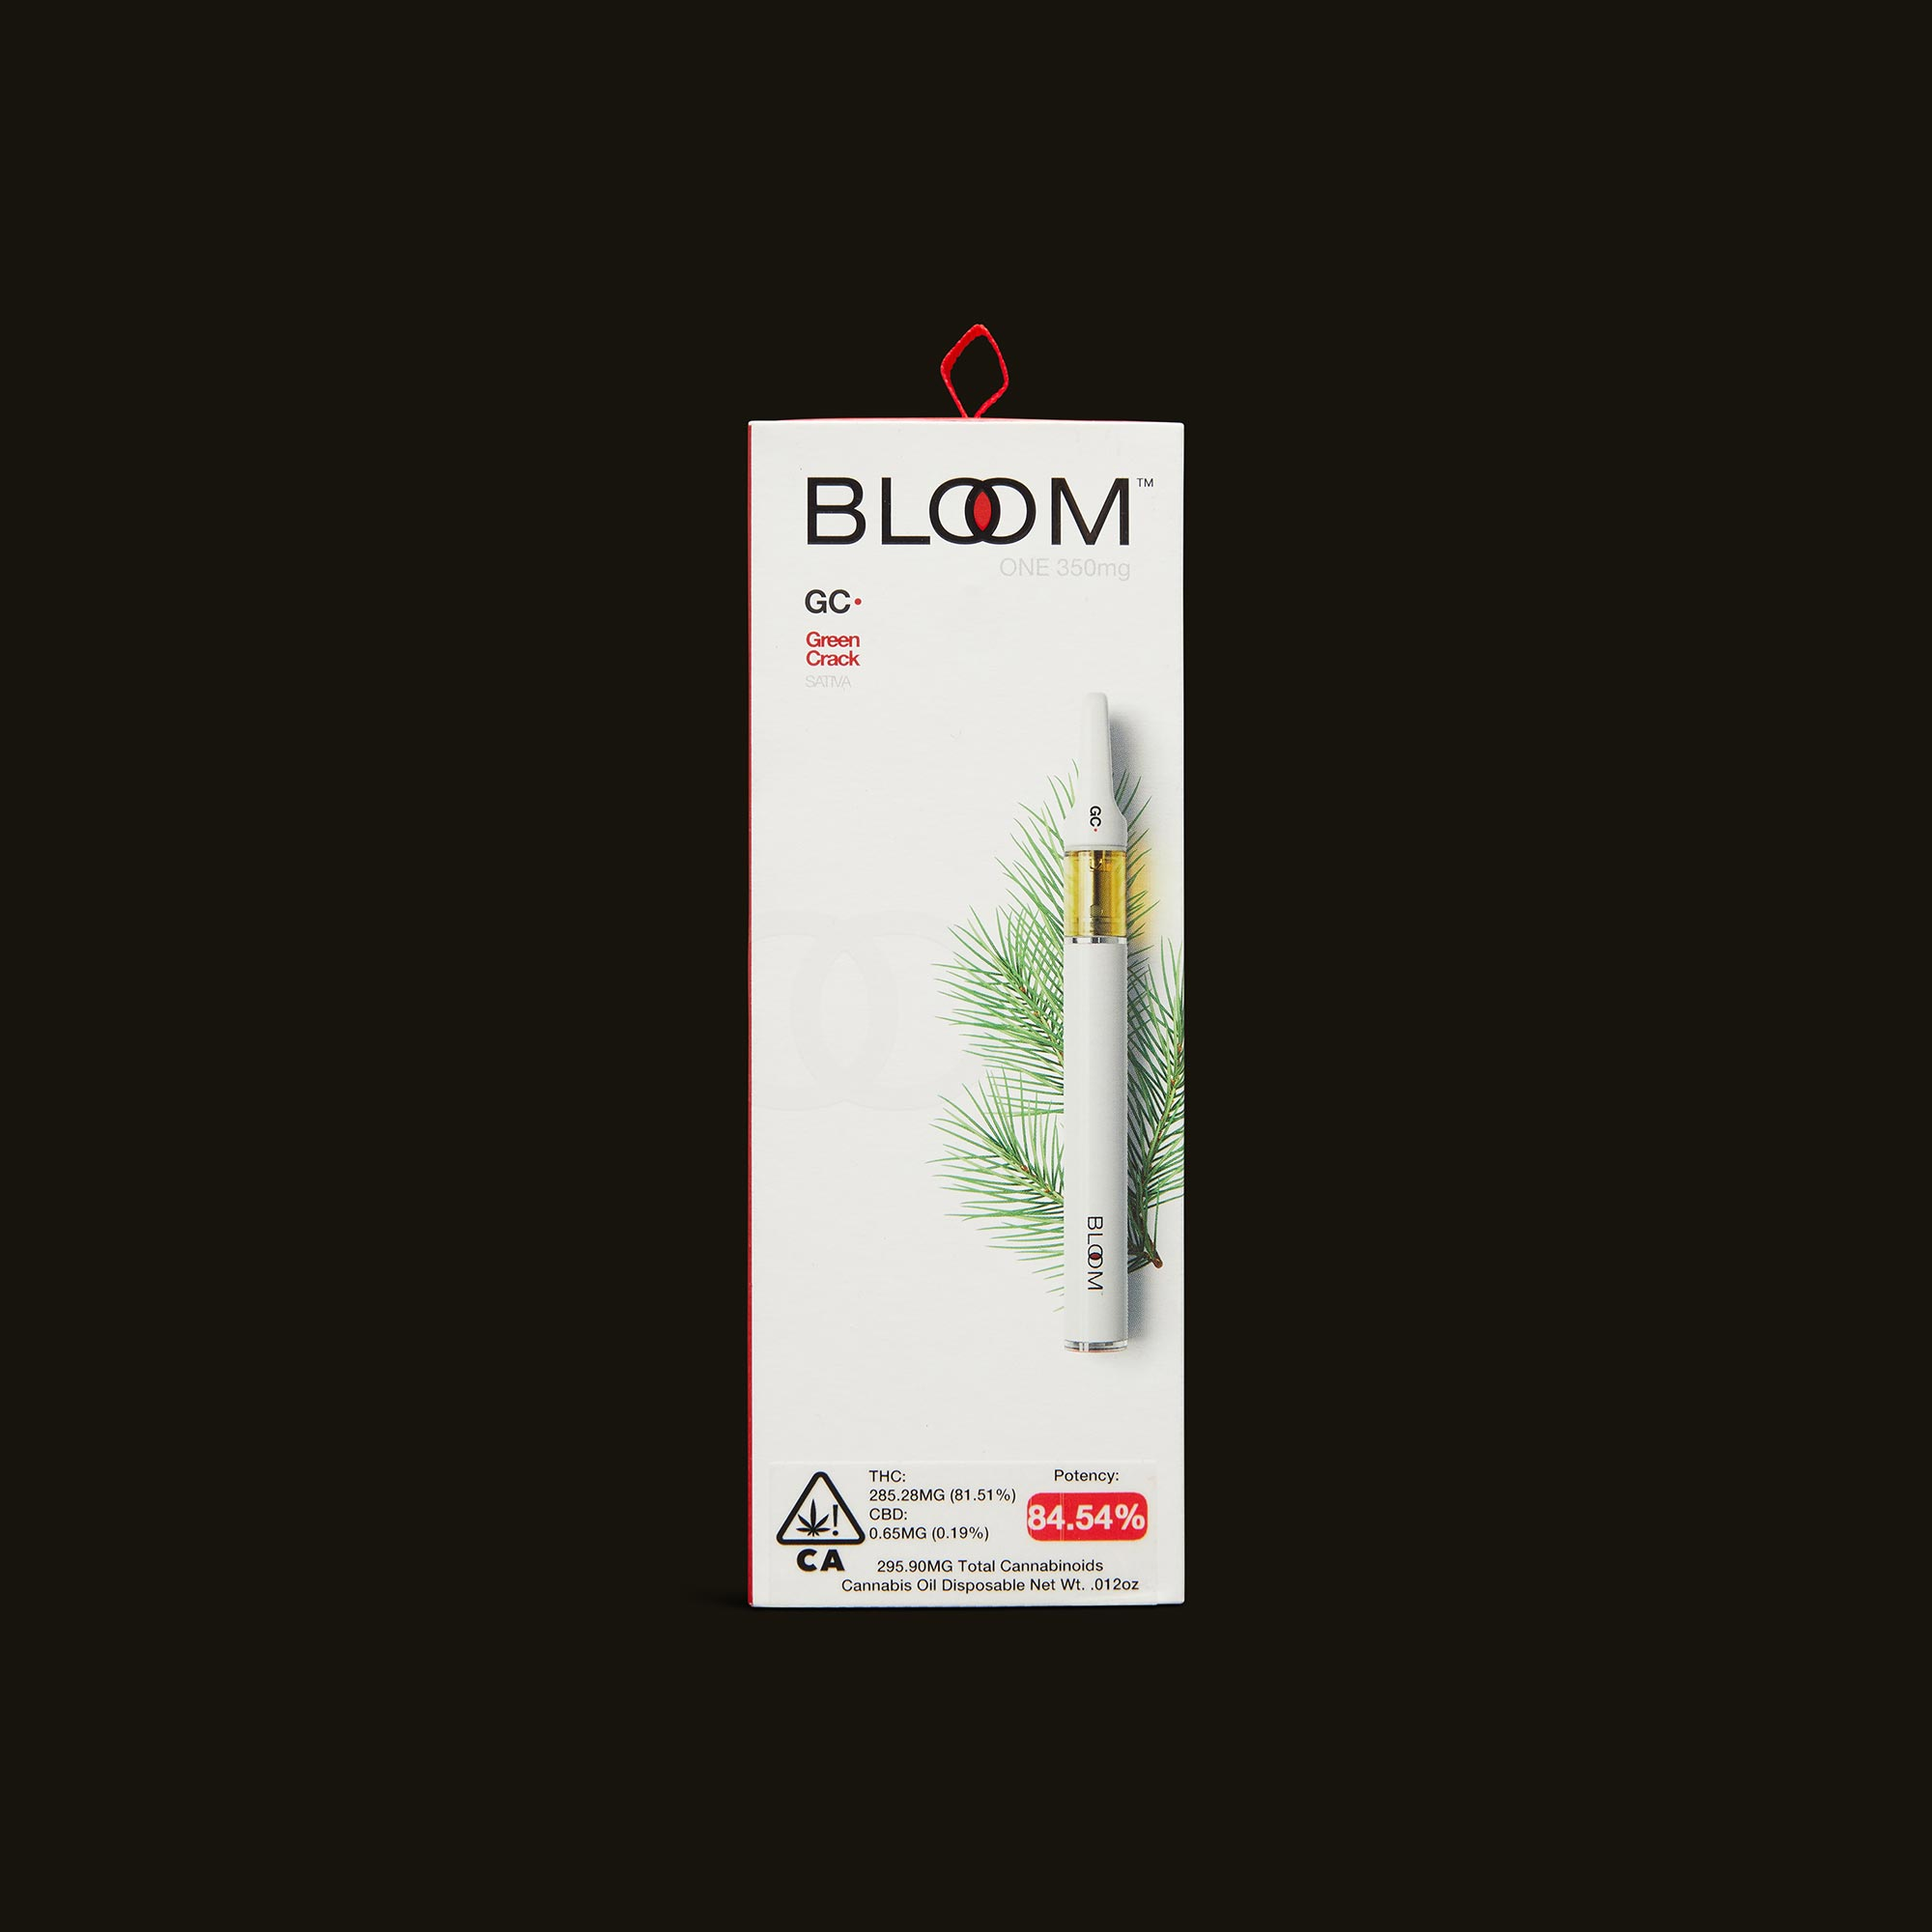 Green Crack Bloom One - 350mg disposable pen